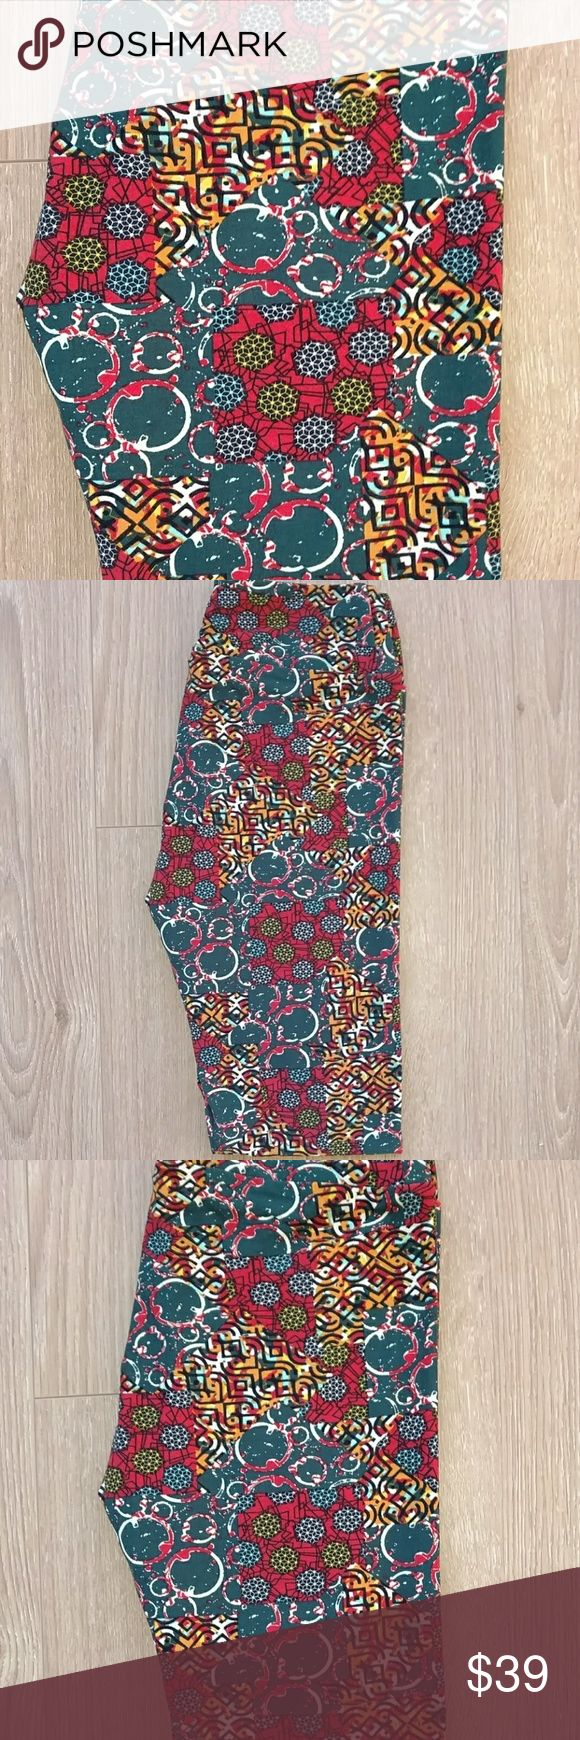 🆕 Lularoe Leggings OS Lularoe leggings OS. Made in Vietnam. Brand new/never worn.   If you make an offer please be considerate and do not low-ball. Thanks in advance! LuLaRoe Other